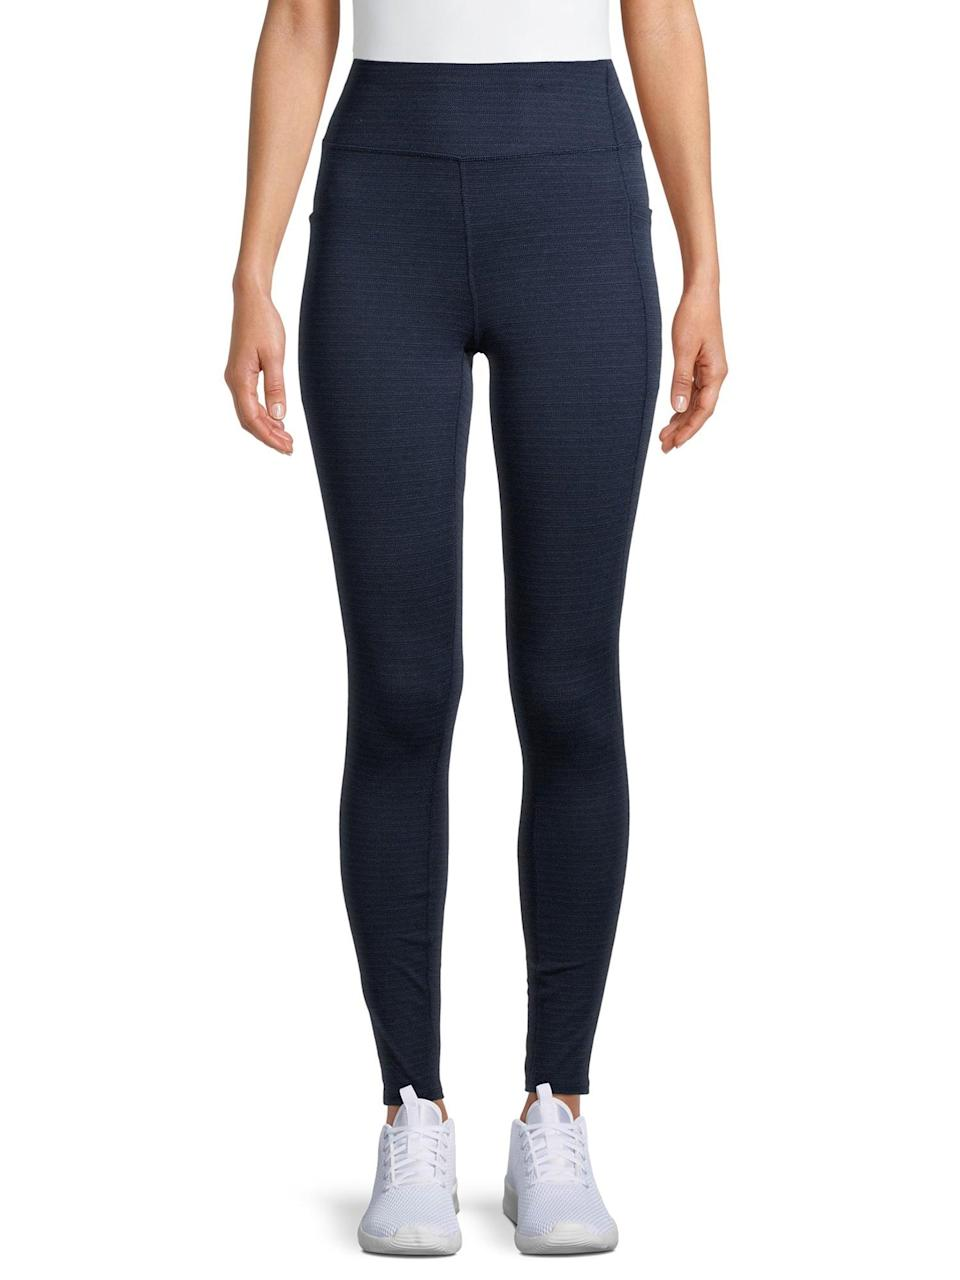 <p>You can never have enough leggings and these <span>Athletic Works Women's Performance Leggings</span> ($7, originally $17) are so comfortable.</p>